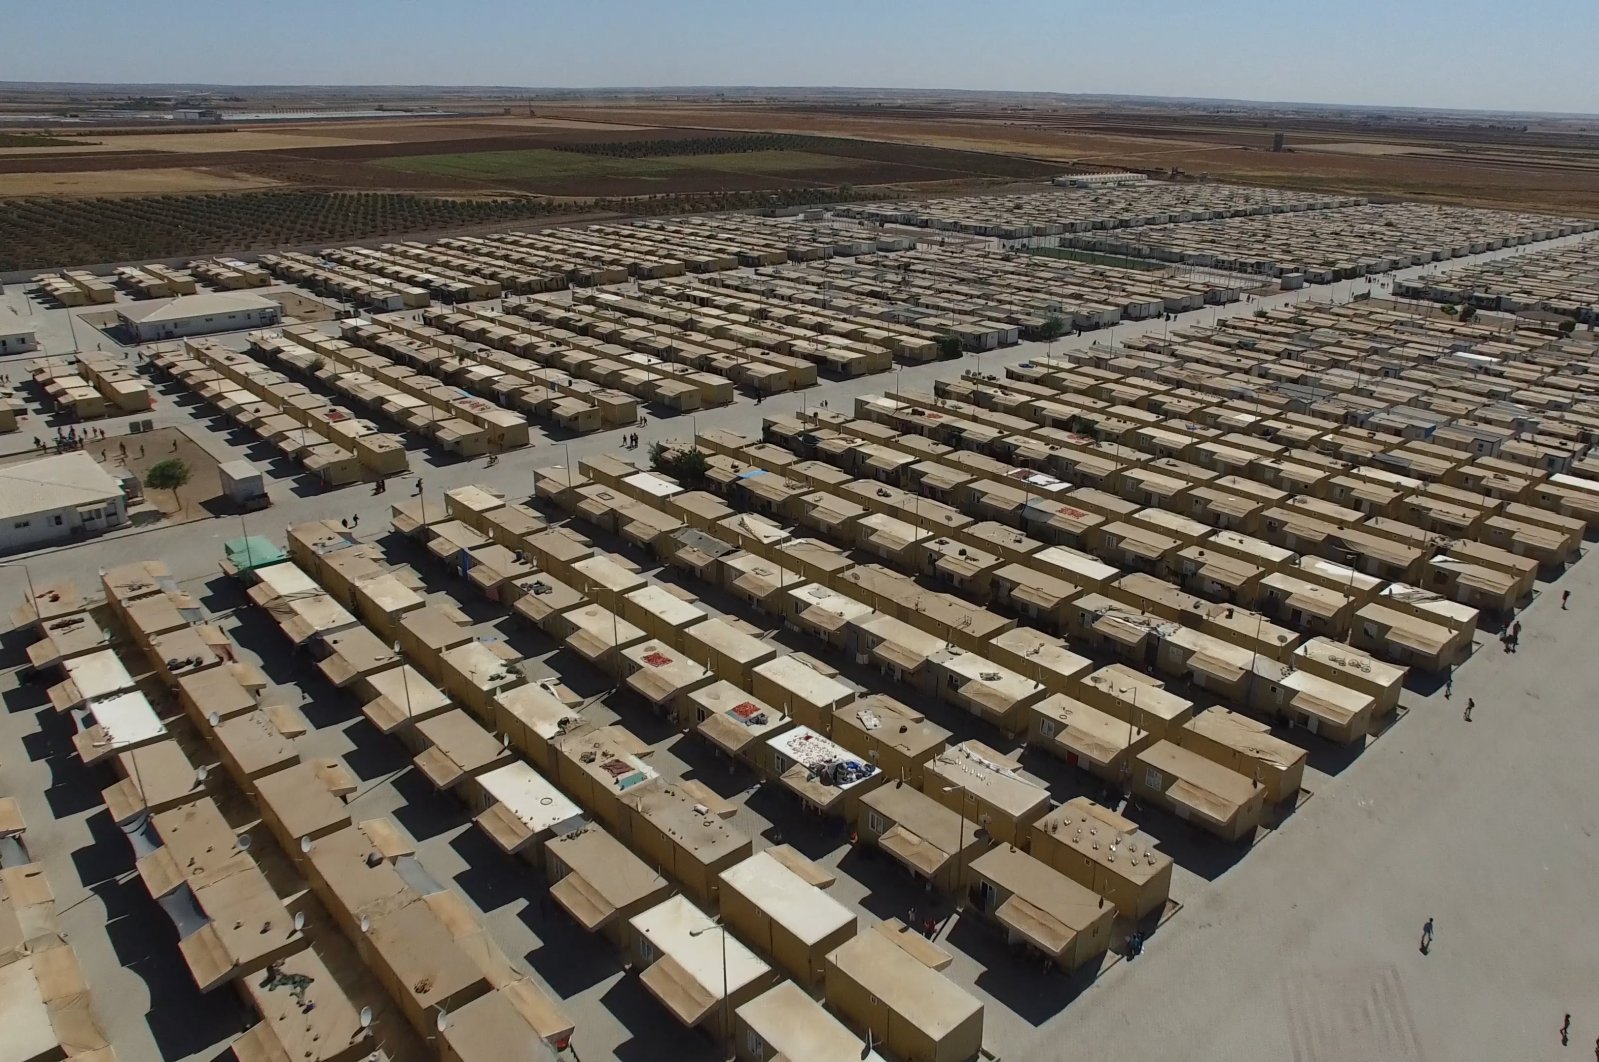 Rows of temporary structures line a Syrian refugee camp in Kilis, Turkey, May 29, 2018. (Shutterstock File Photo)